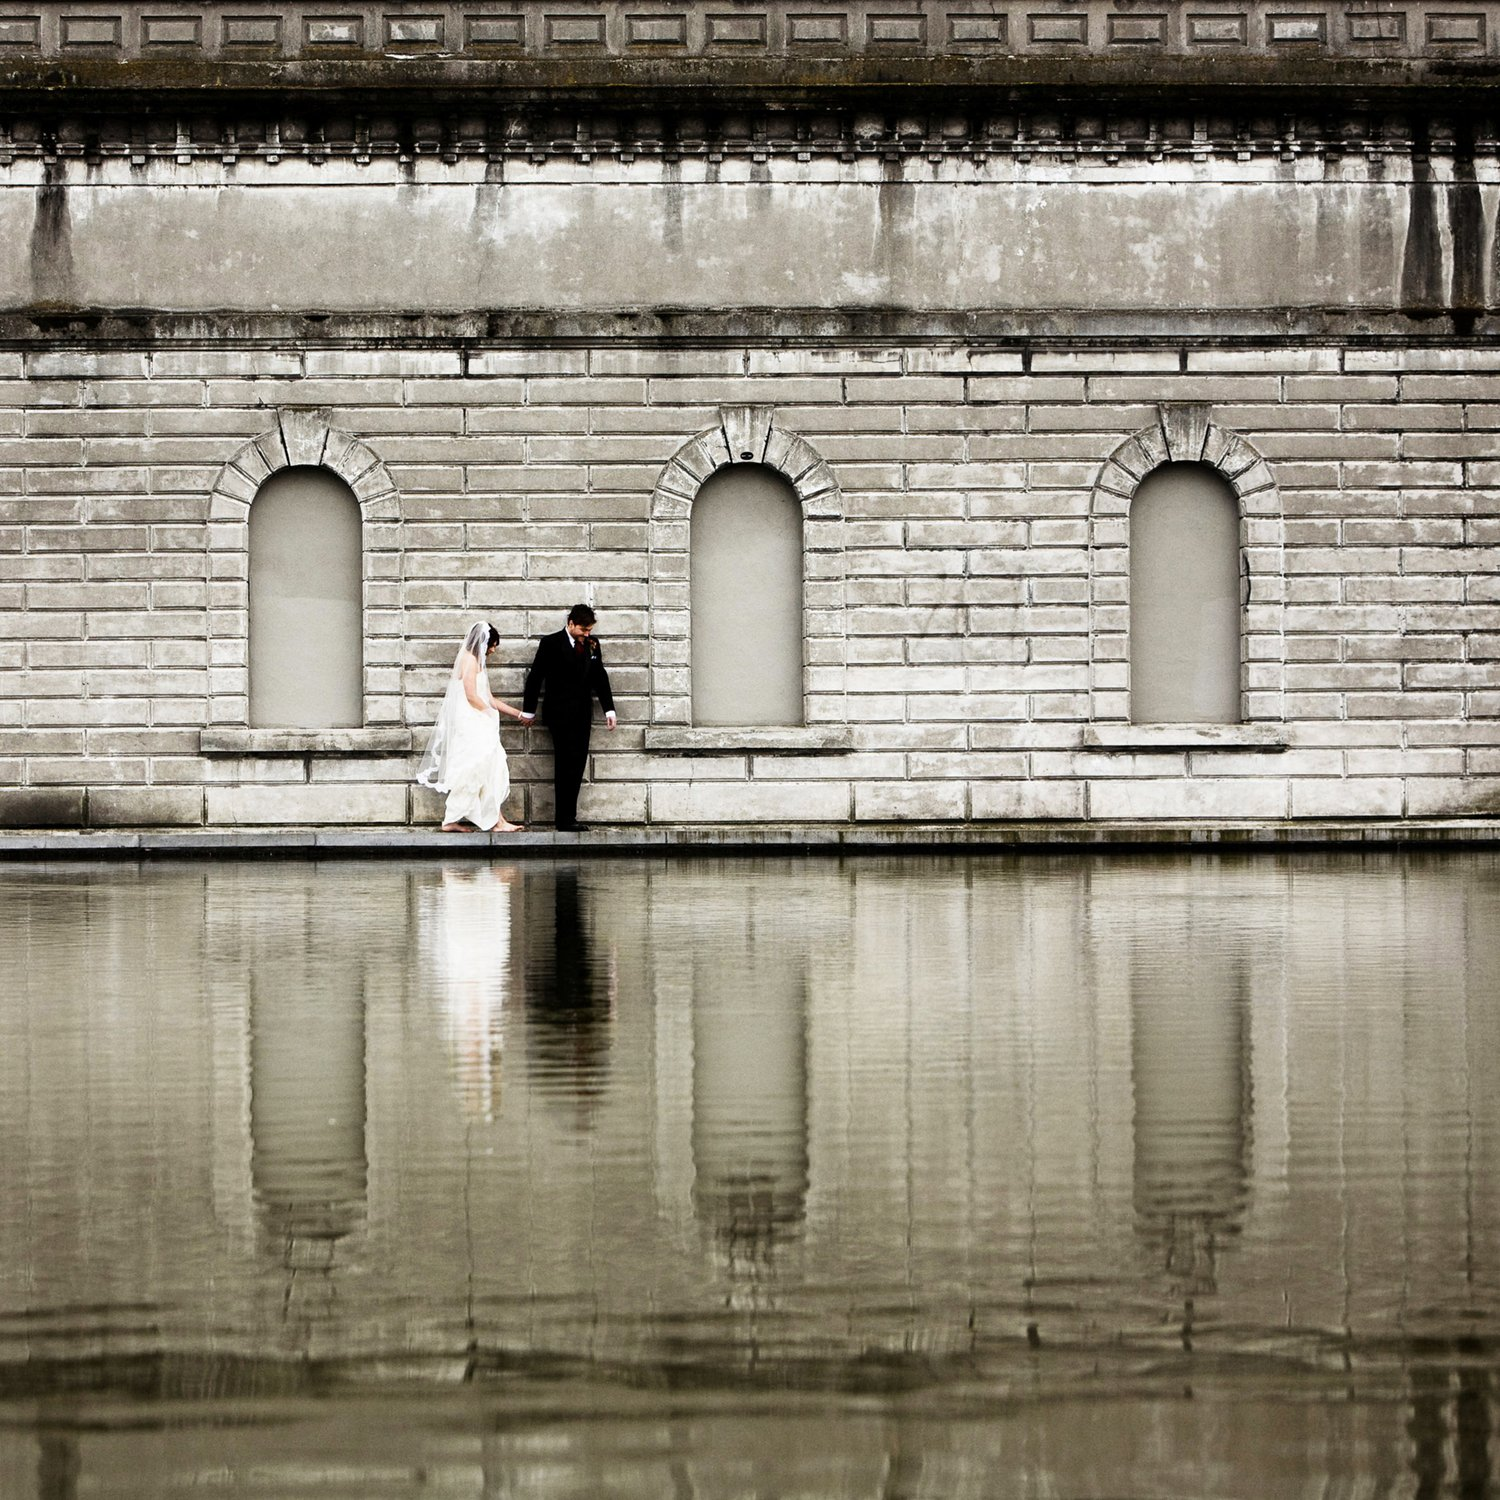 bride_and_groom_water_reflection